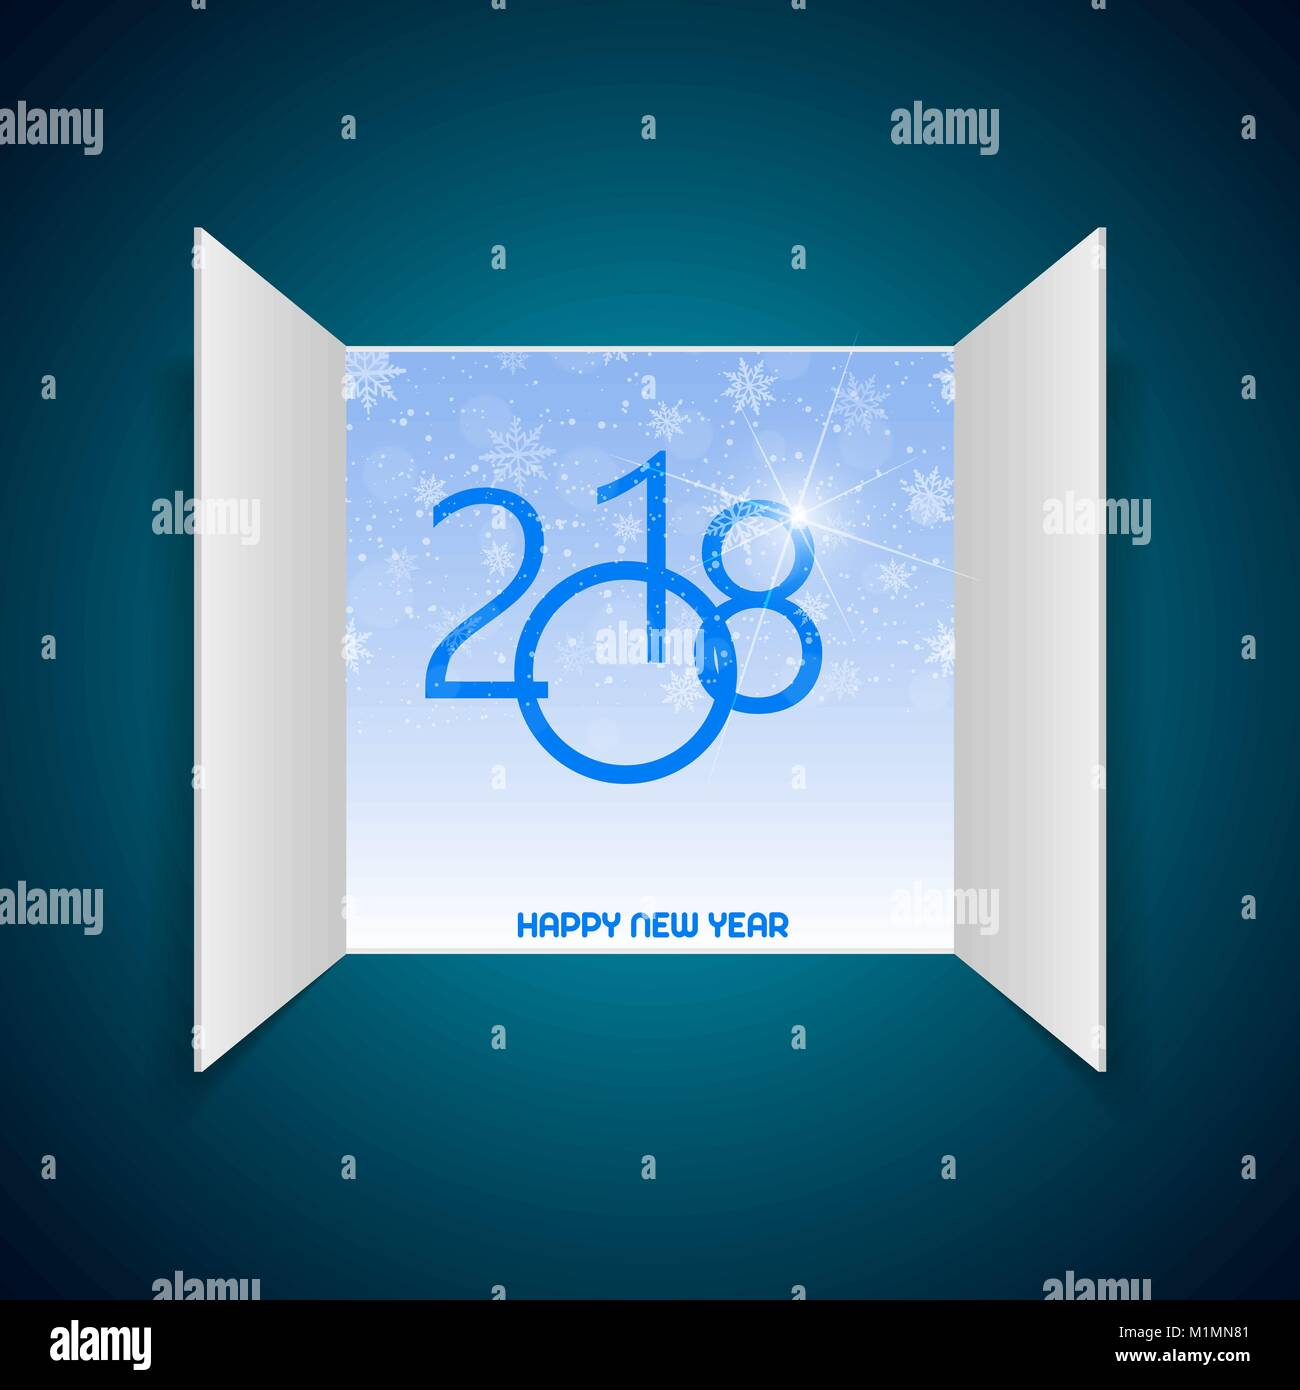 Happy new year greeting card with opened window and snow on blue happy new year greeting card with opened window and snow on blue background 2018 vector kristyandbryce Images